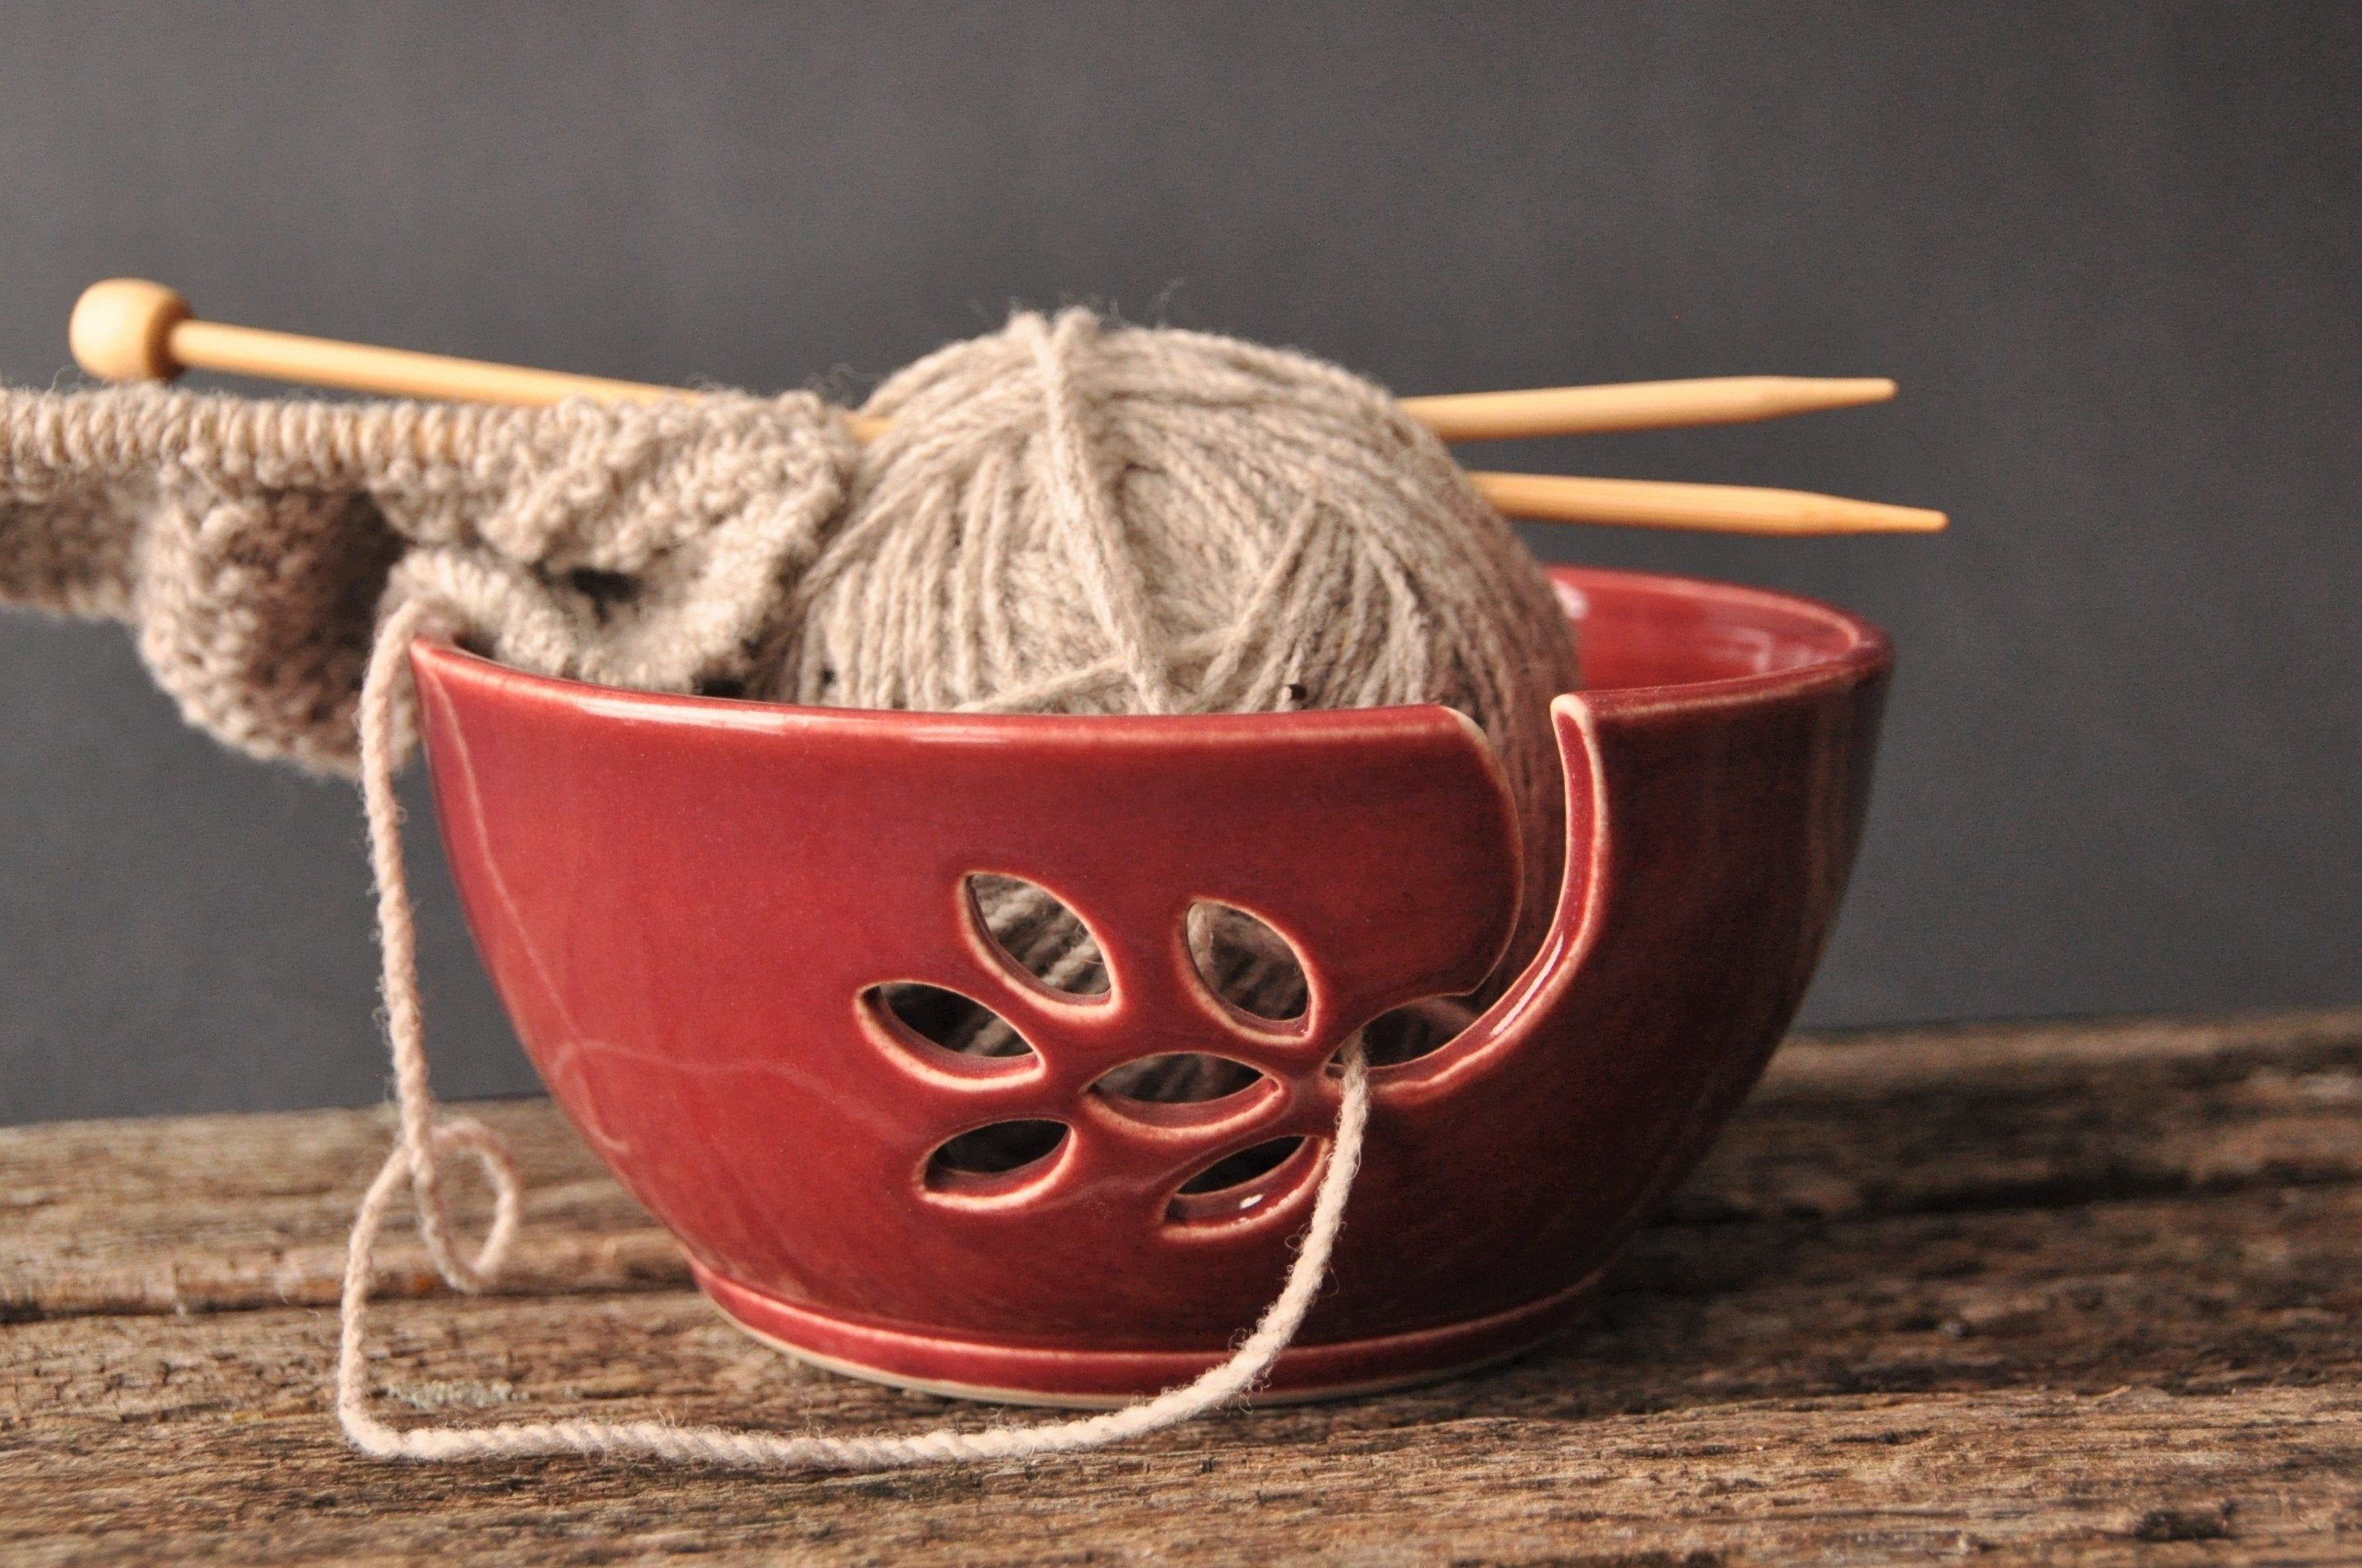 Red ceramic yarn bowl with oak leaf, crochet bowl, pottery wool bowl, pottery yarn bowl, knitter's bowl, unique yarn bowl, pottery gift #crochetbowl This handmade yarn bowl is just right for holding your yarn so the cat doesn't chase it!  The bowl is made of smooth porcelain clay on the potter's Wheel.  The flower cut-out is fun and practical, wide enough for larger yarns yet adapts to fine wool as well.  This piece makes a great gift for any knitter.  Practical yet lovely to look at, this uniqu #crochetbowl